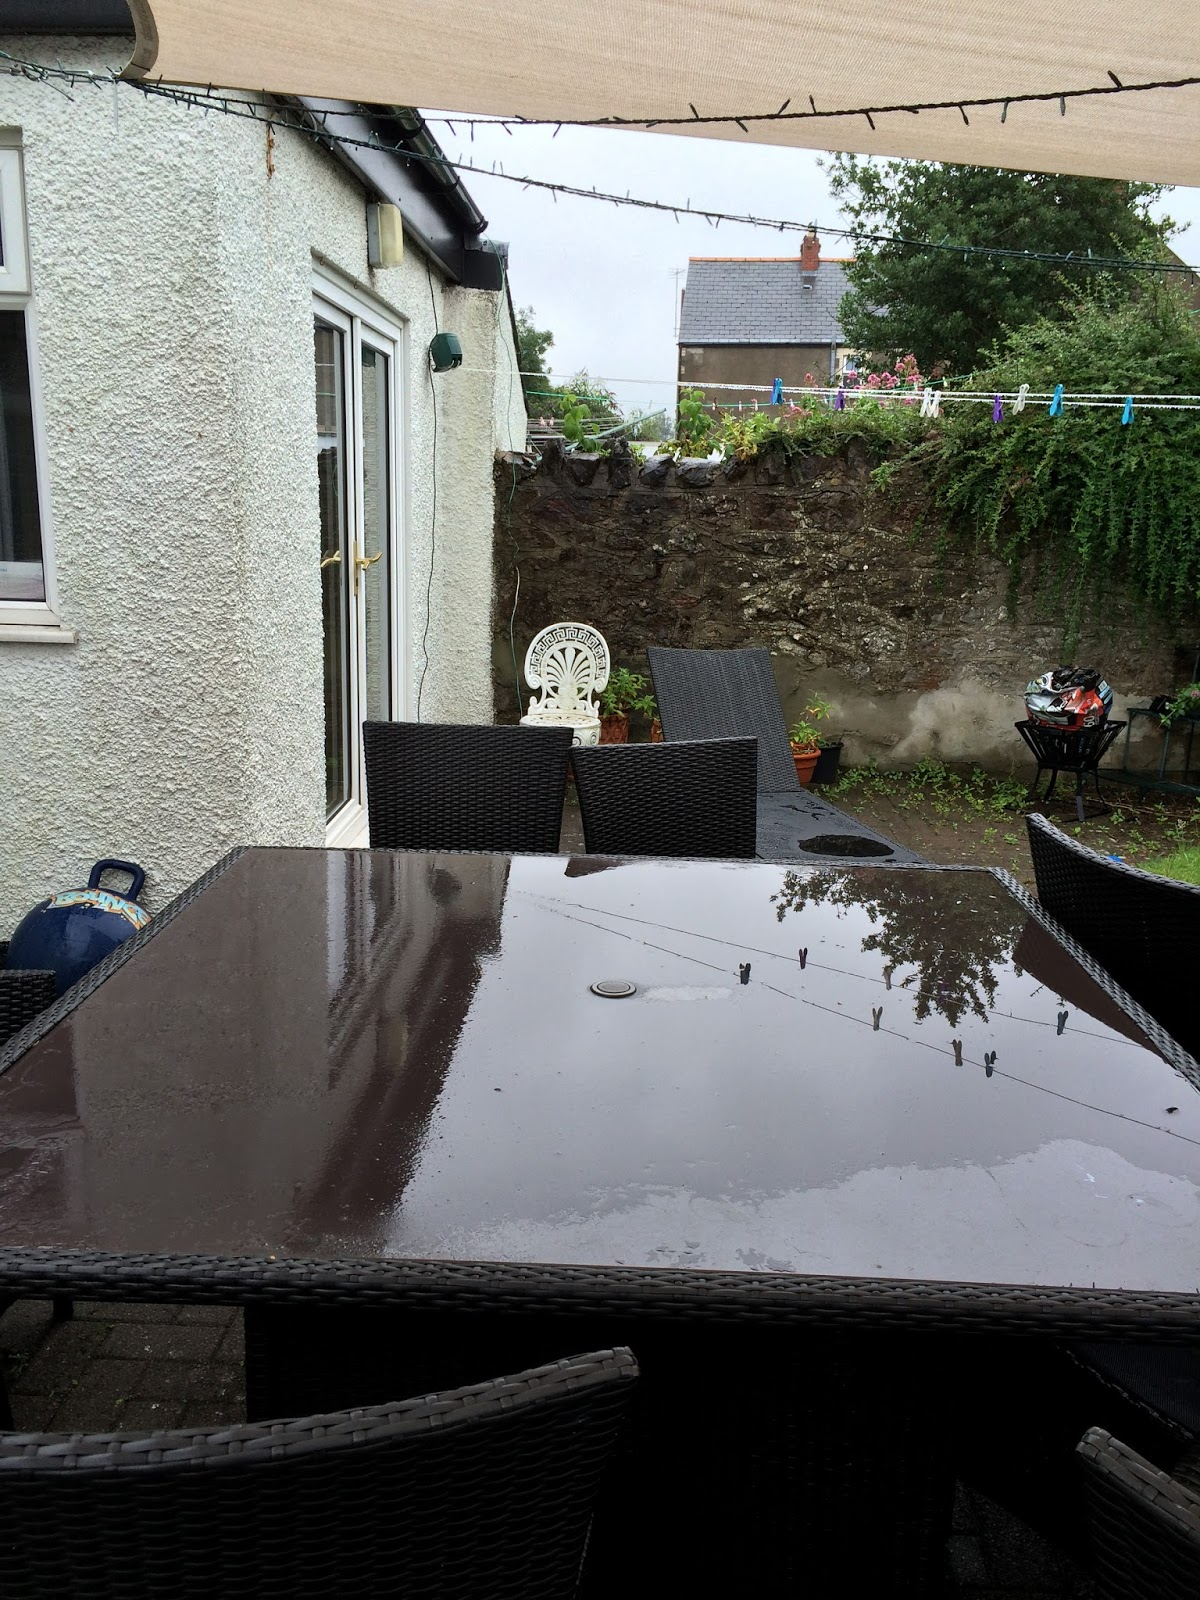 garden clean up - garden table and chairs under a shade sail